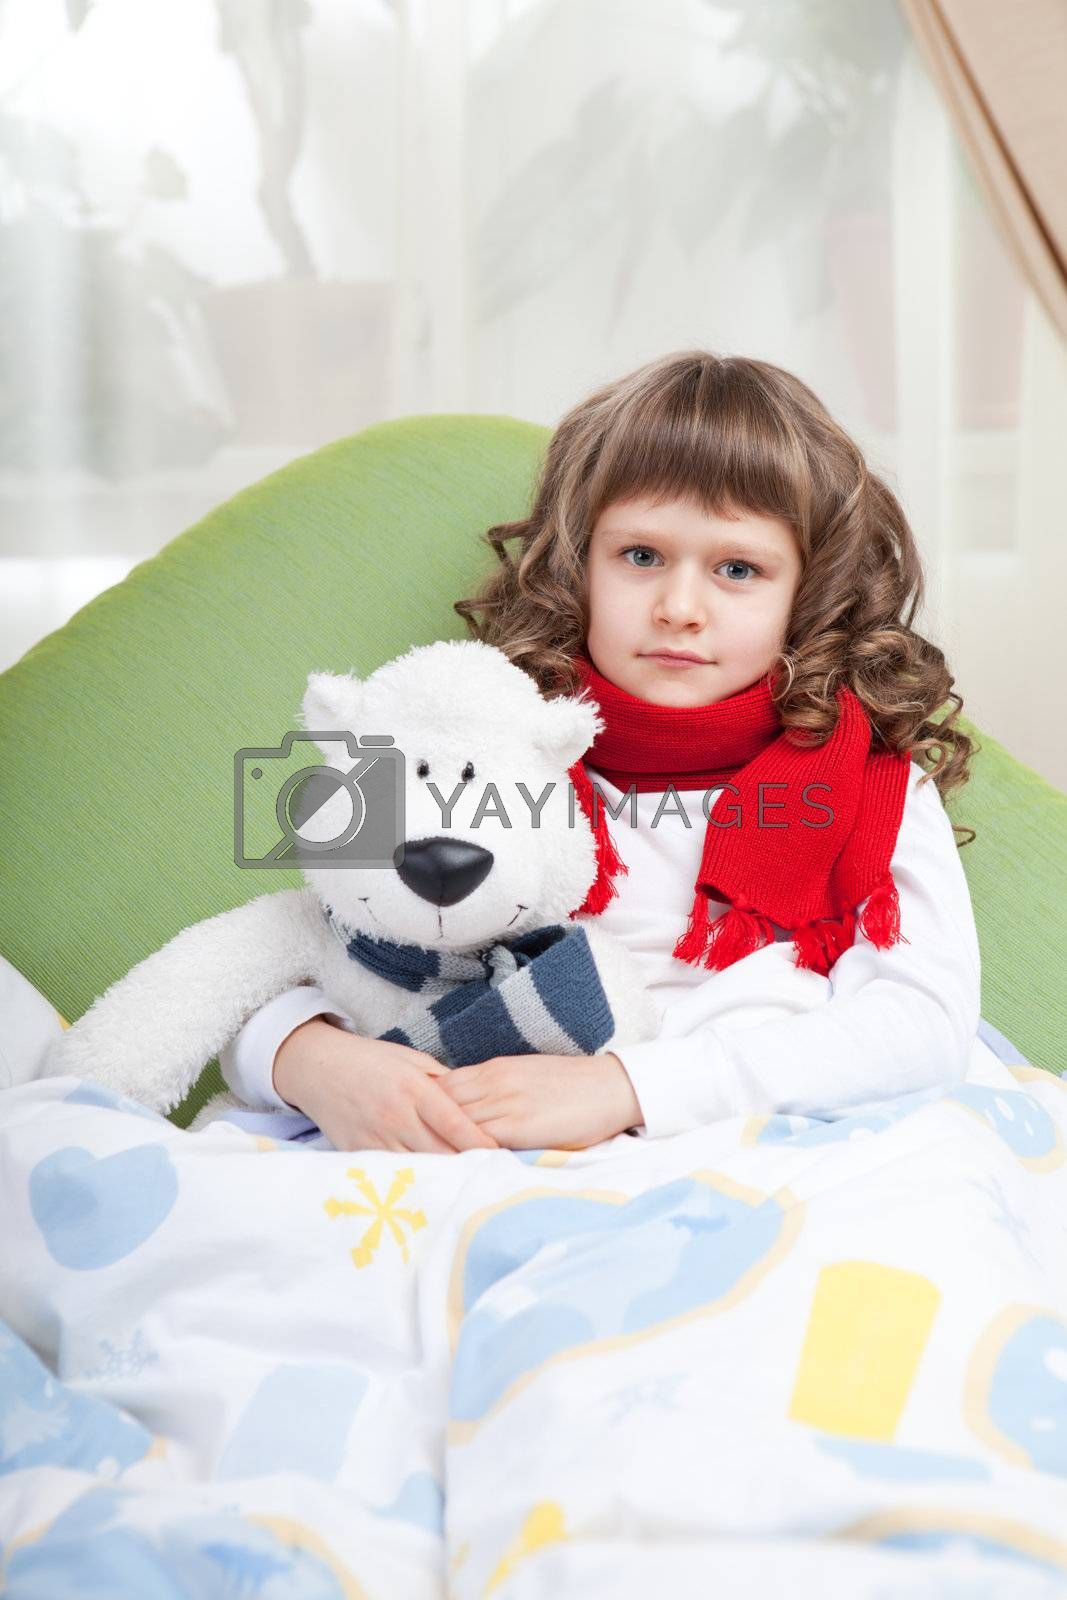 Royalty free image of Little sick girl with scarf embraces toy bear in bed by SergeyAK